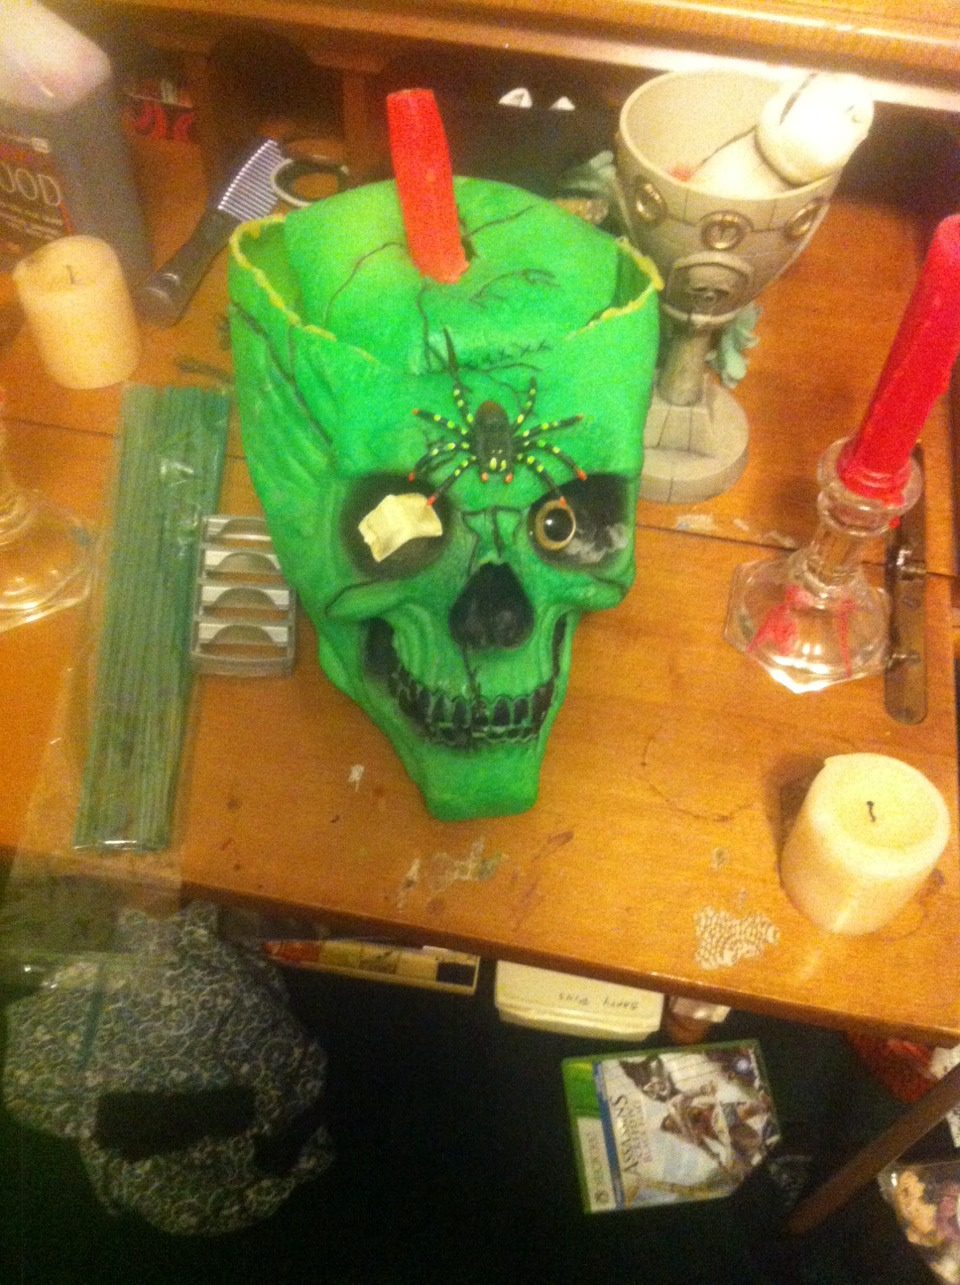 Halloween decor is a best bet. This is Steve, my skull that resides in my room. I took a simple Halloween decoration and turned him into a change/candle holder. Just by cutting out a little stuffing :)